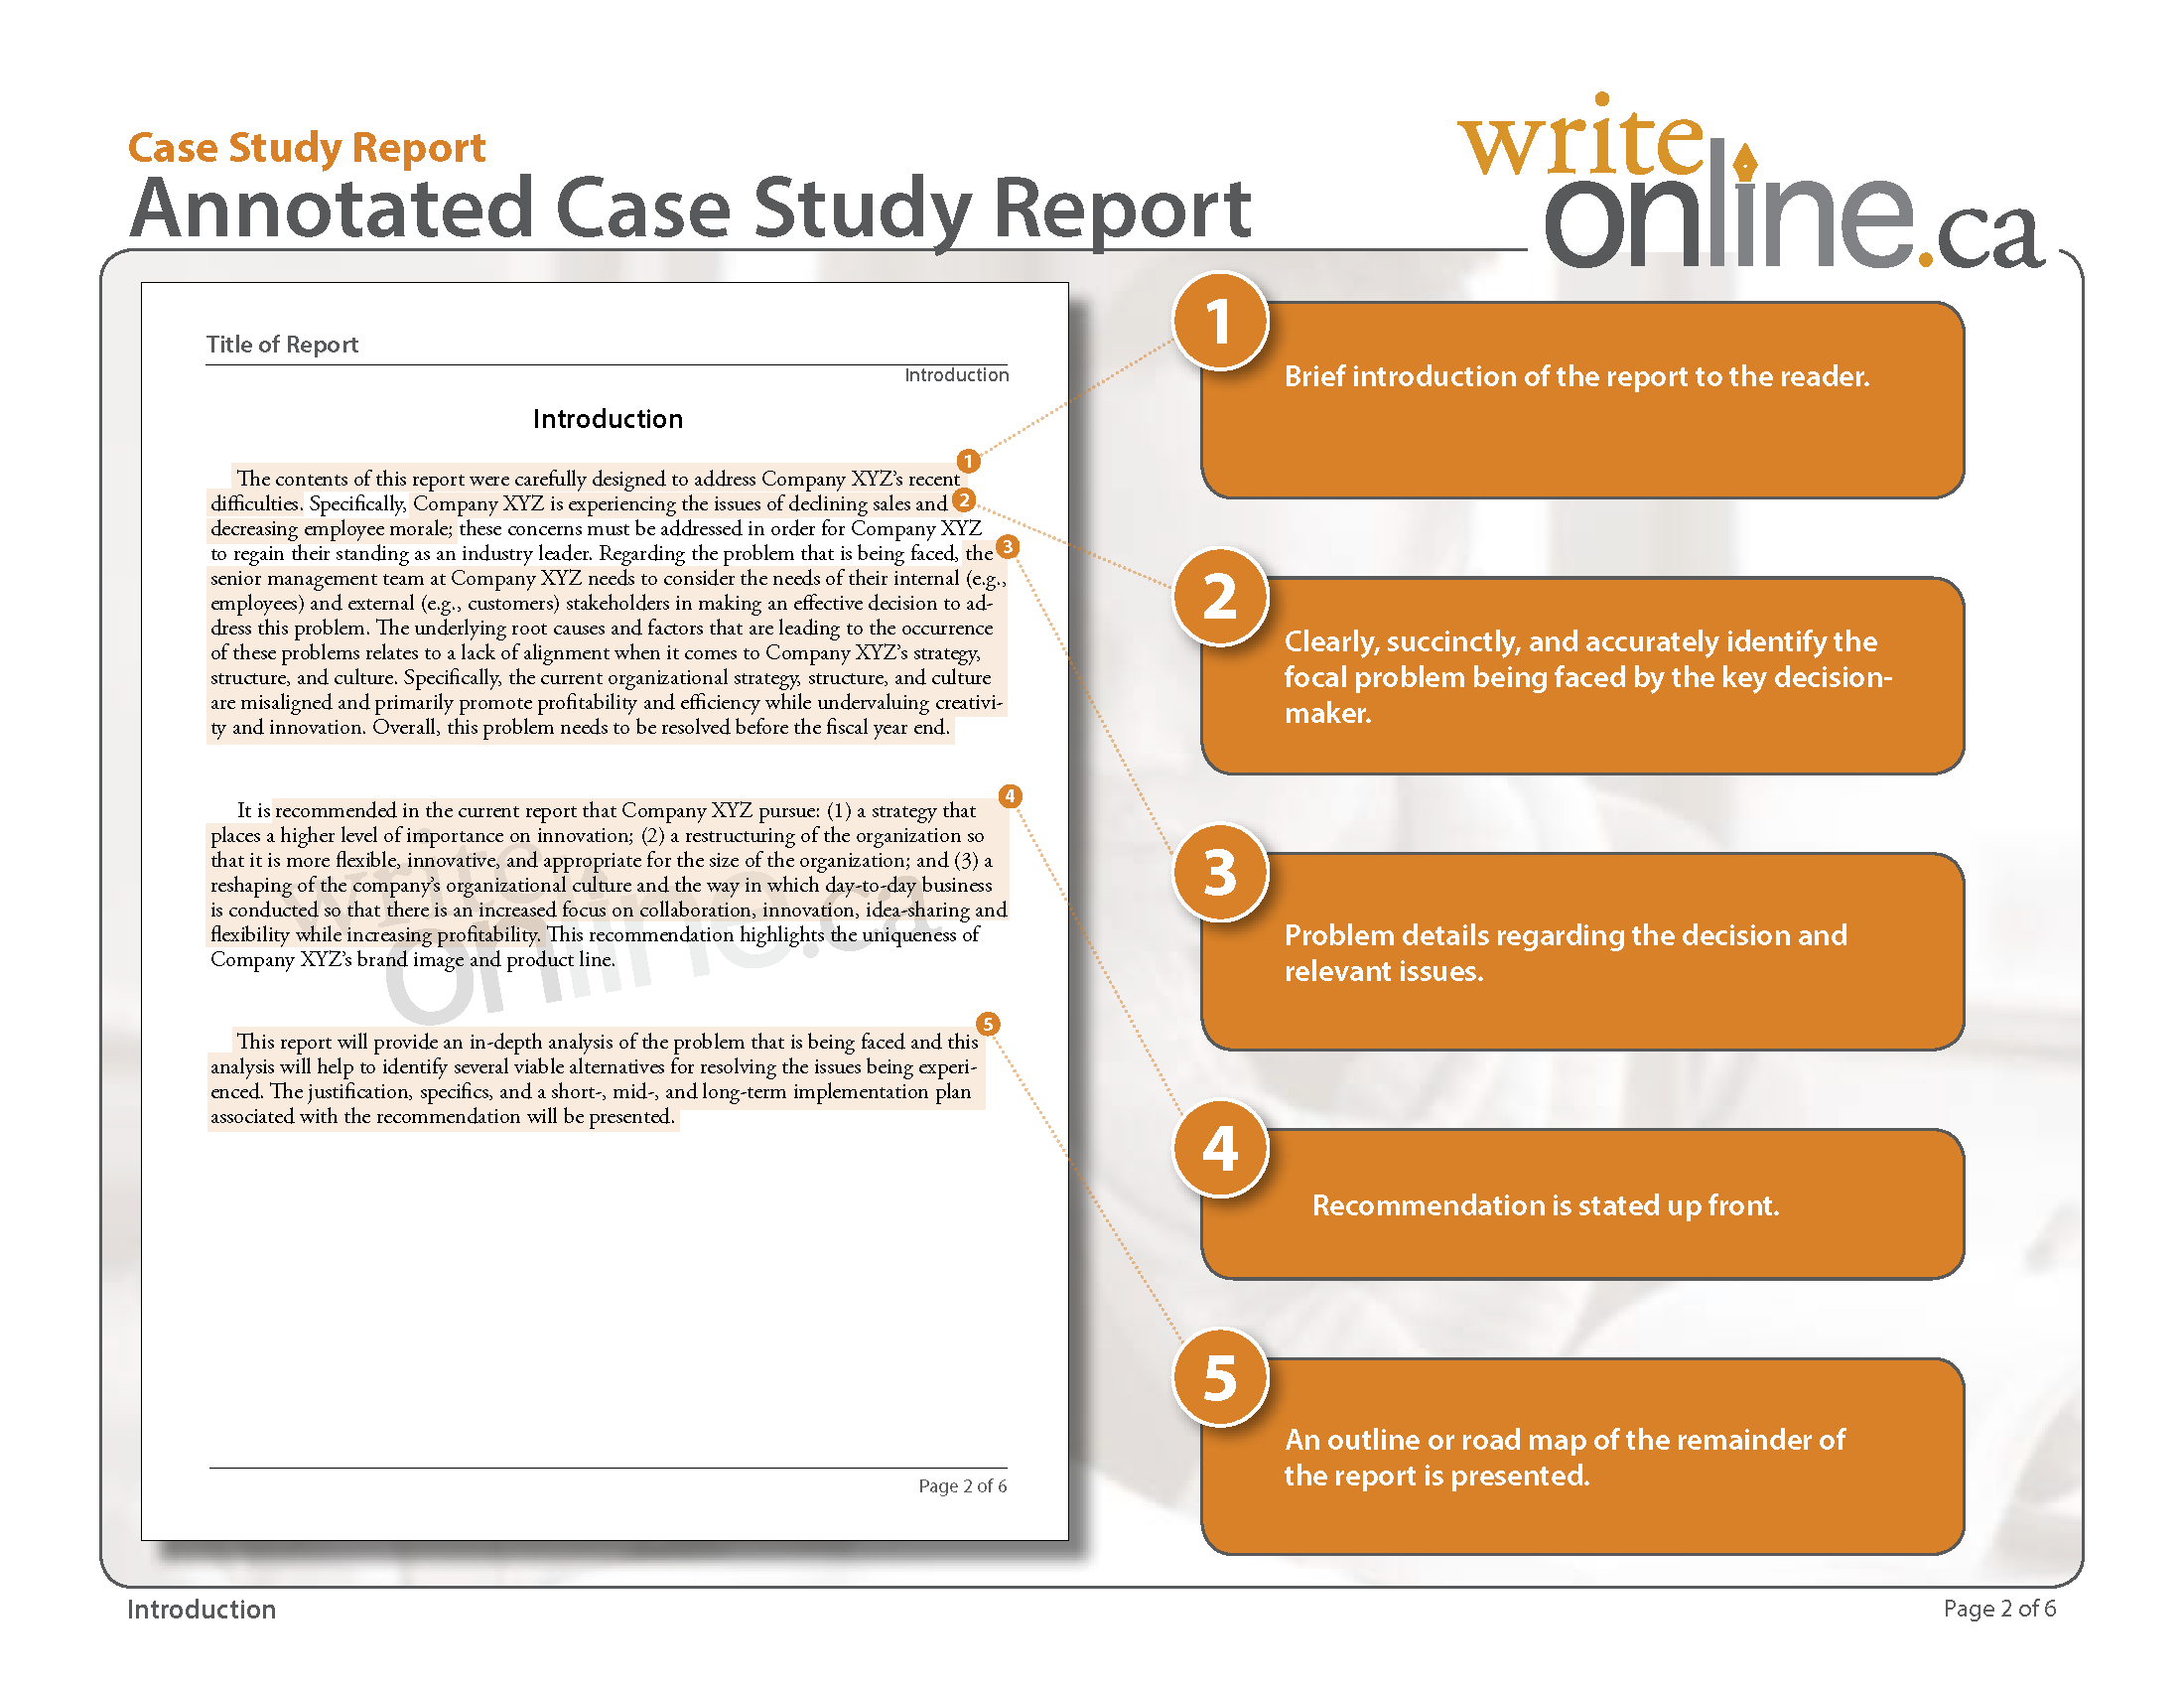 009 Research Paper Casestudy Annotatedfull Page 2 Component Of Archaicawful Pdf Parts Chapter 1 1-5 Full